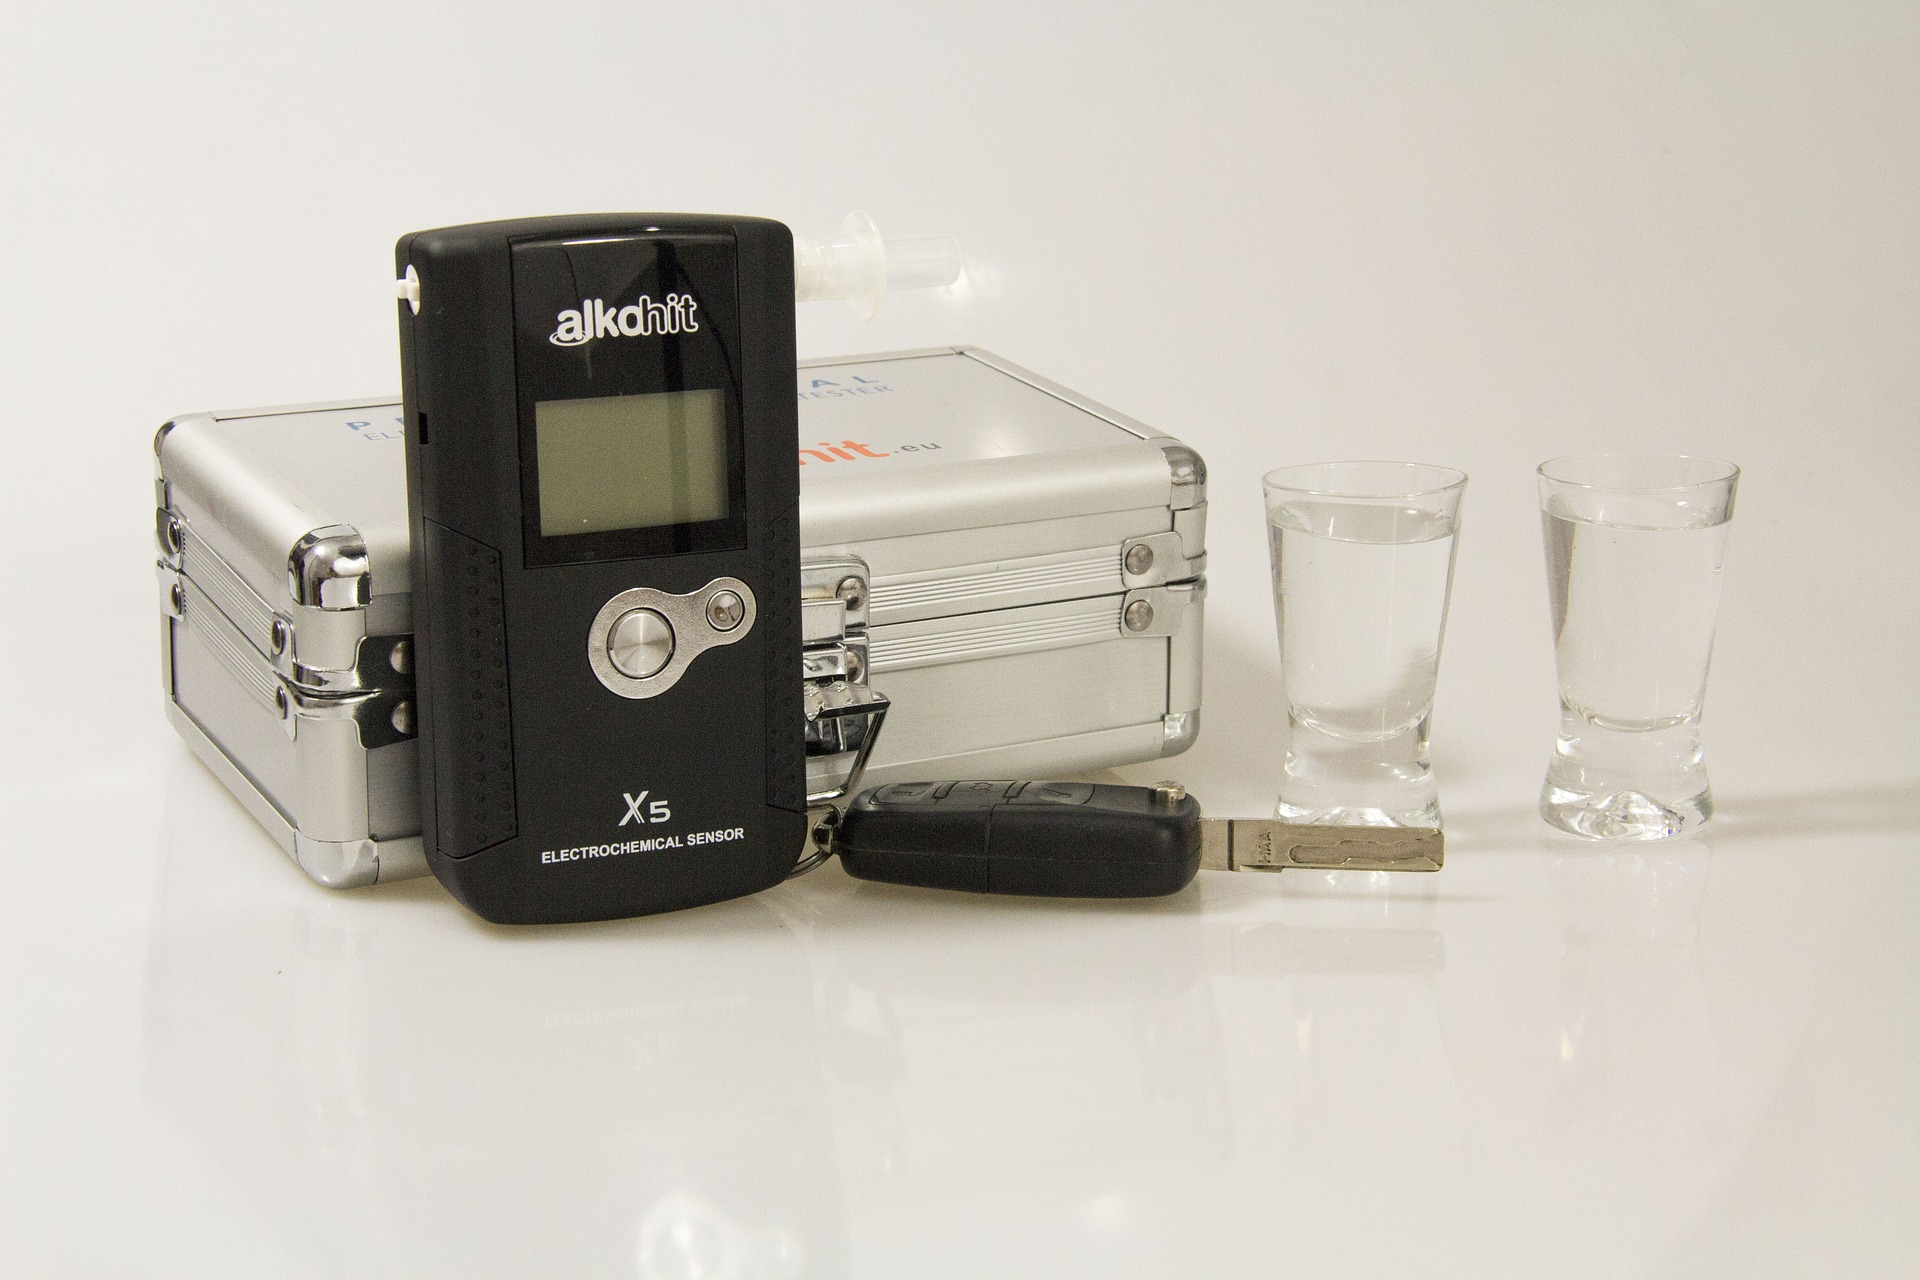 I was ordered to install a breathalyzer in my car. Do I need to get one?